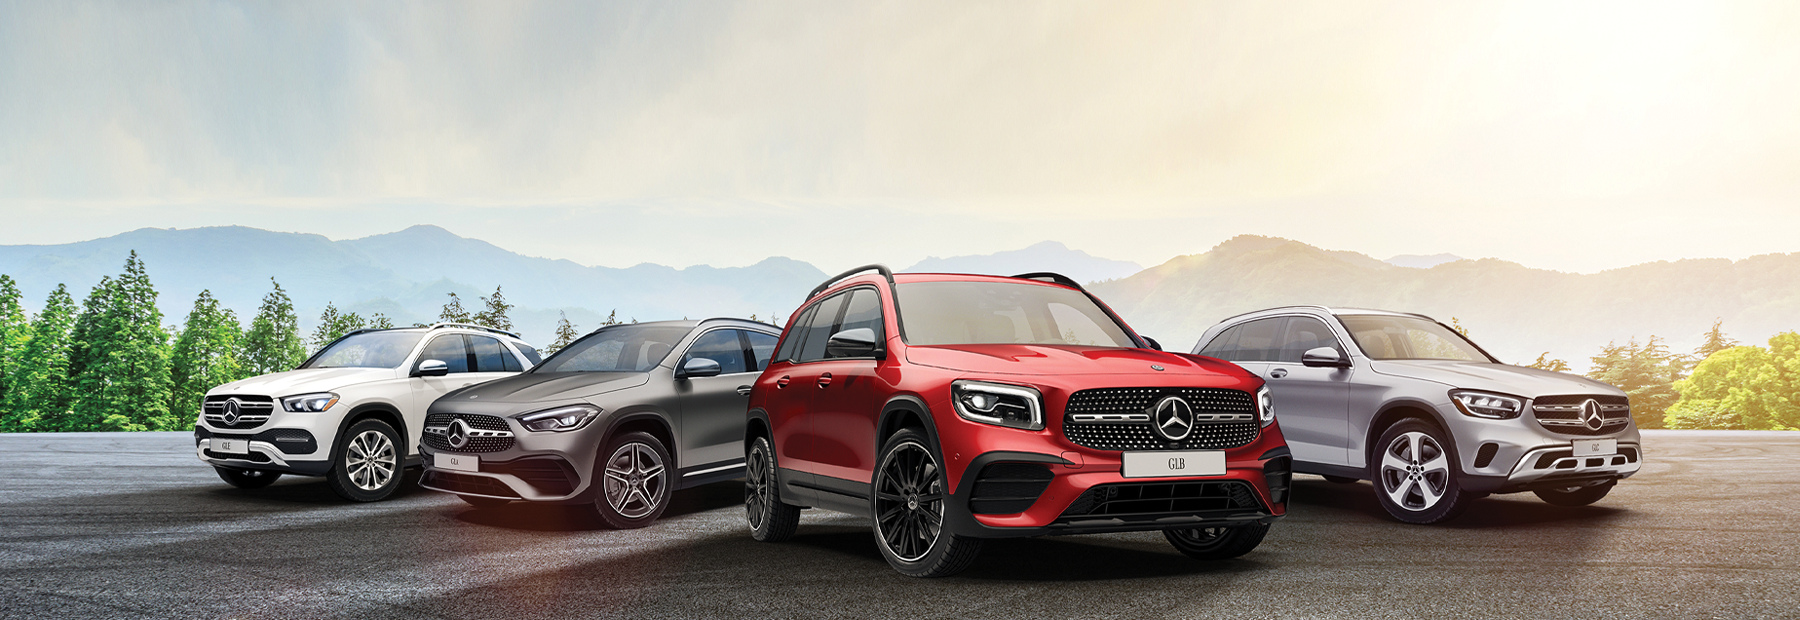 The Mercedes-Benz Family SUV Event